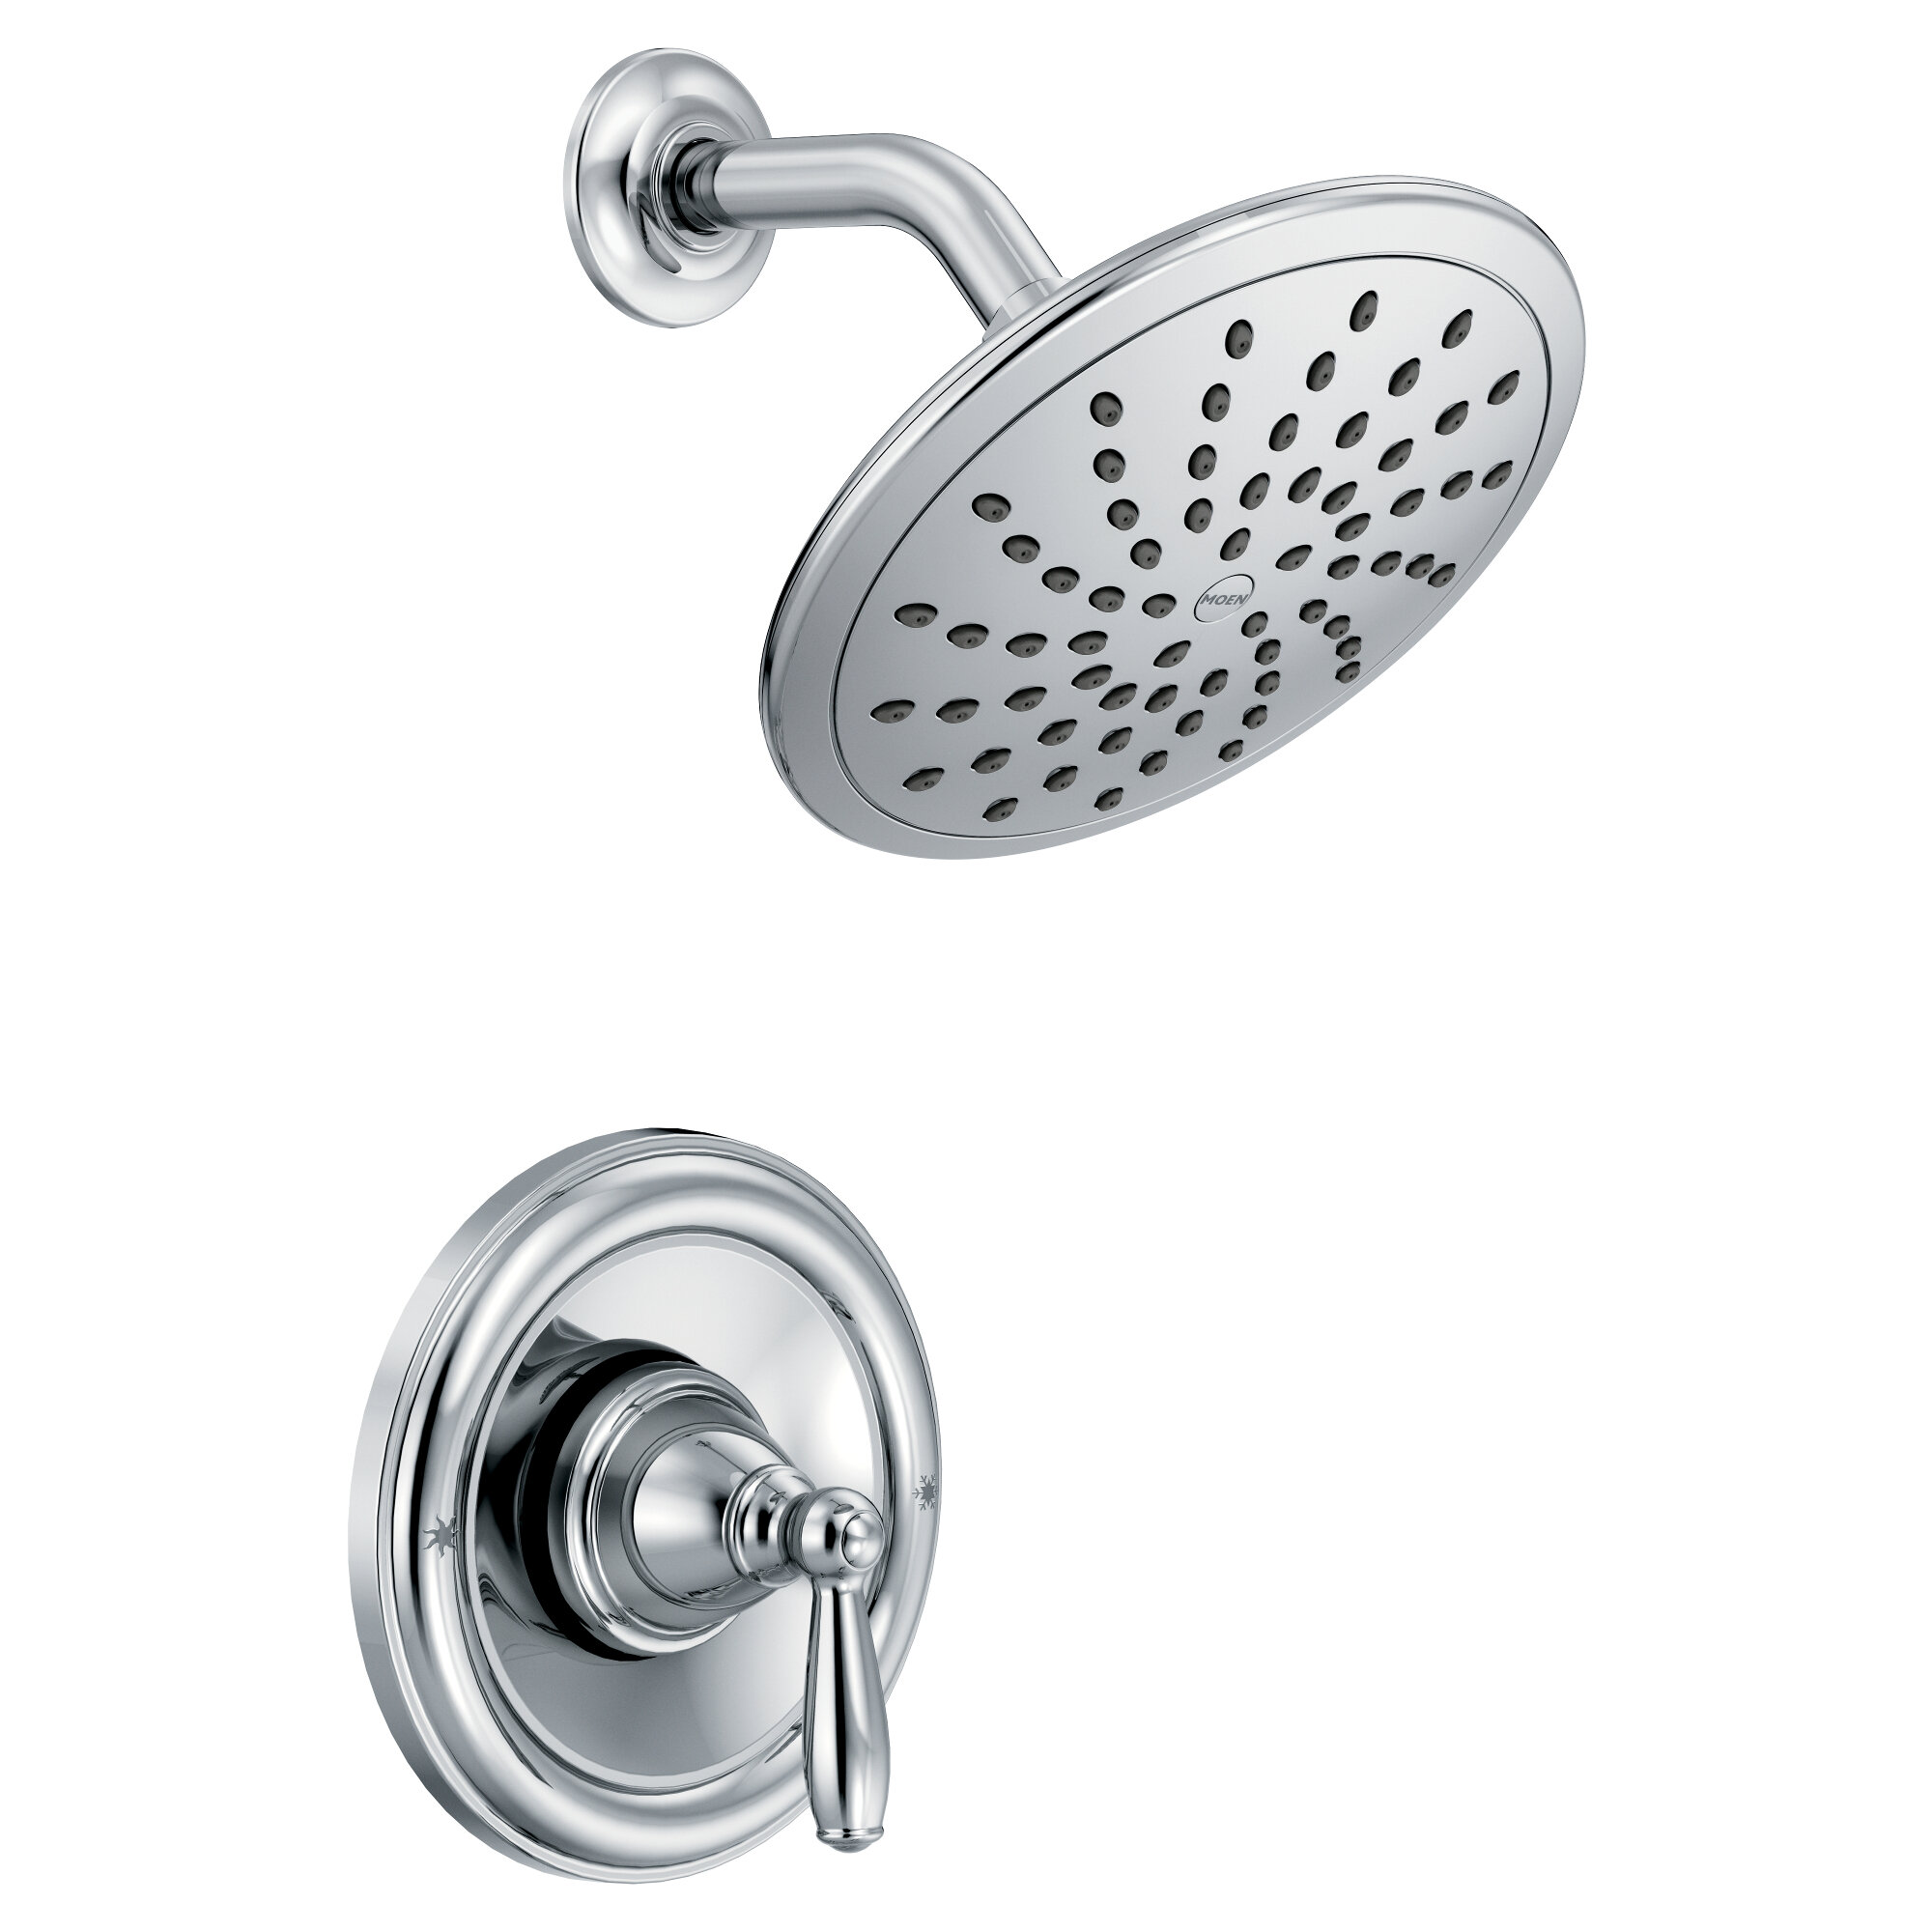 faucets bathtub rubicon tub brushed bn handle nickel included shower faucet vibrant mount heads and p wall combos in spray kohler valve